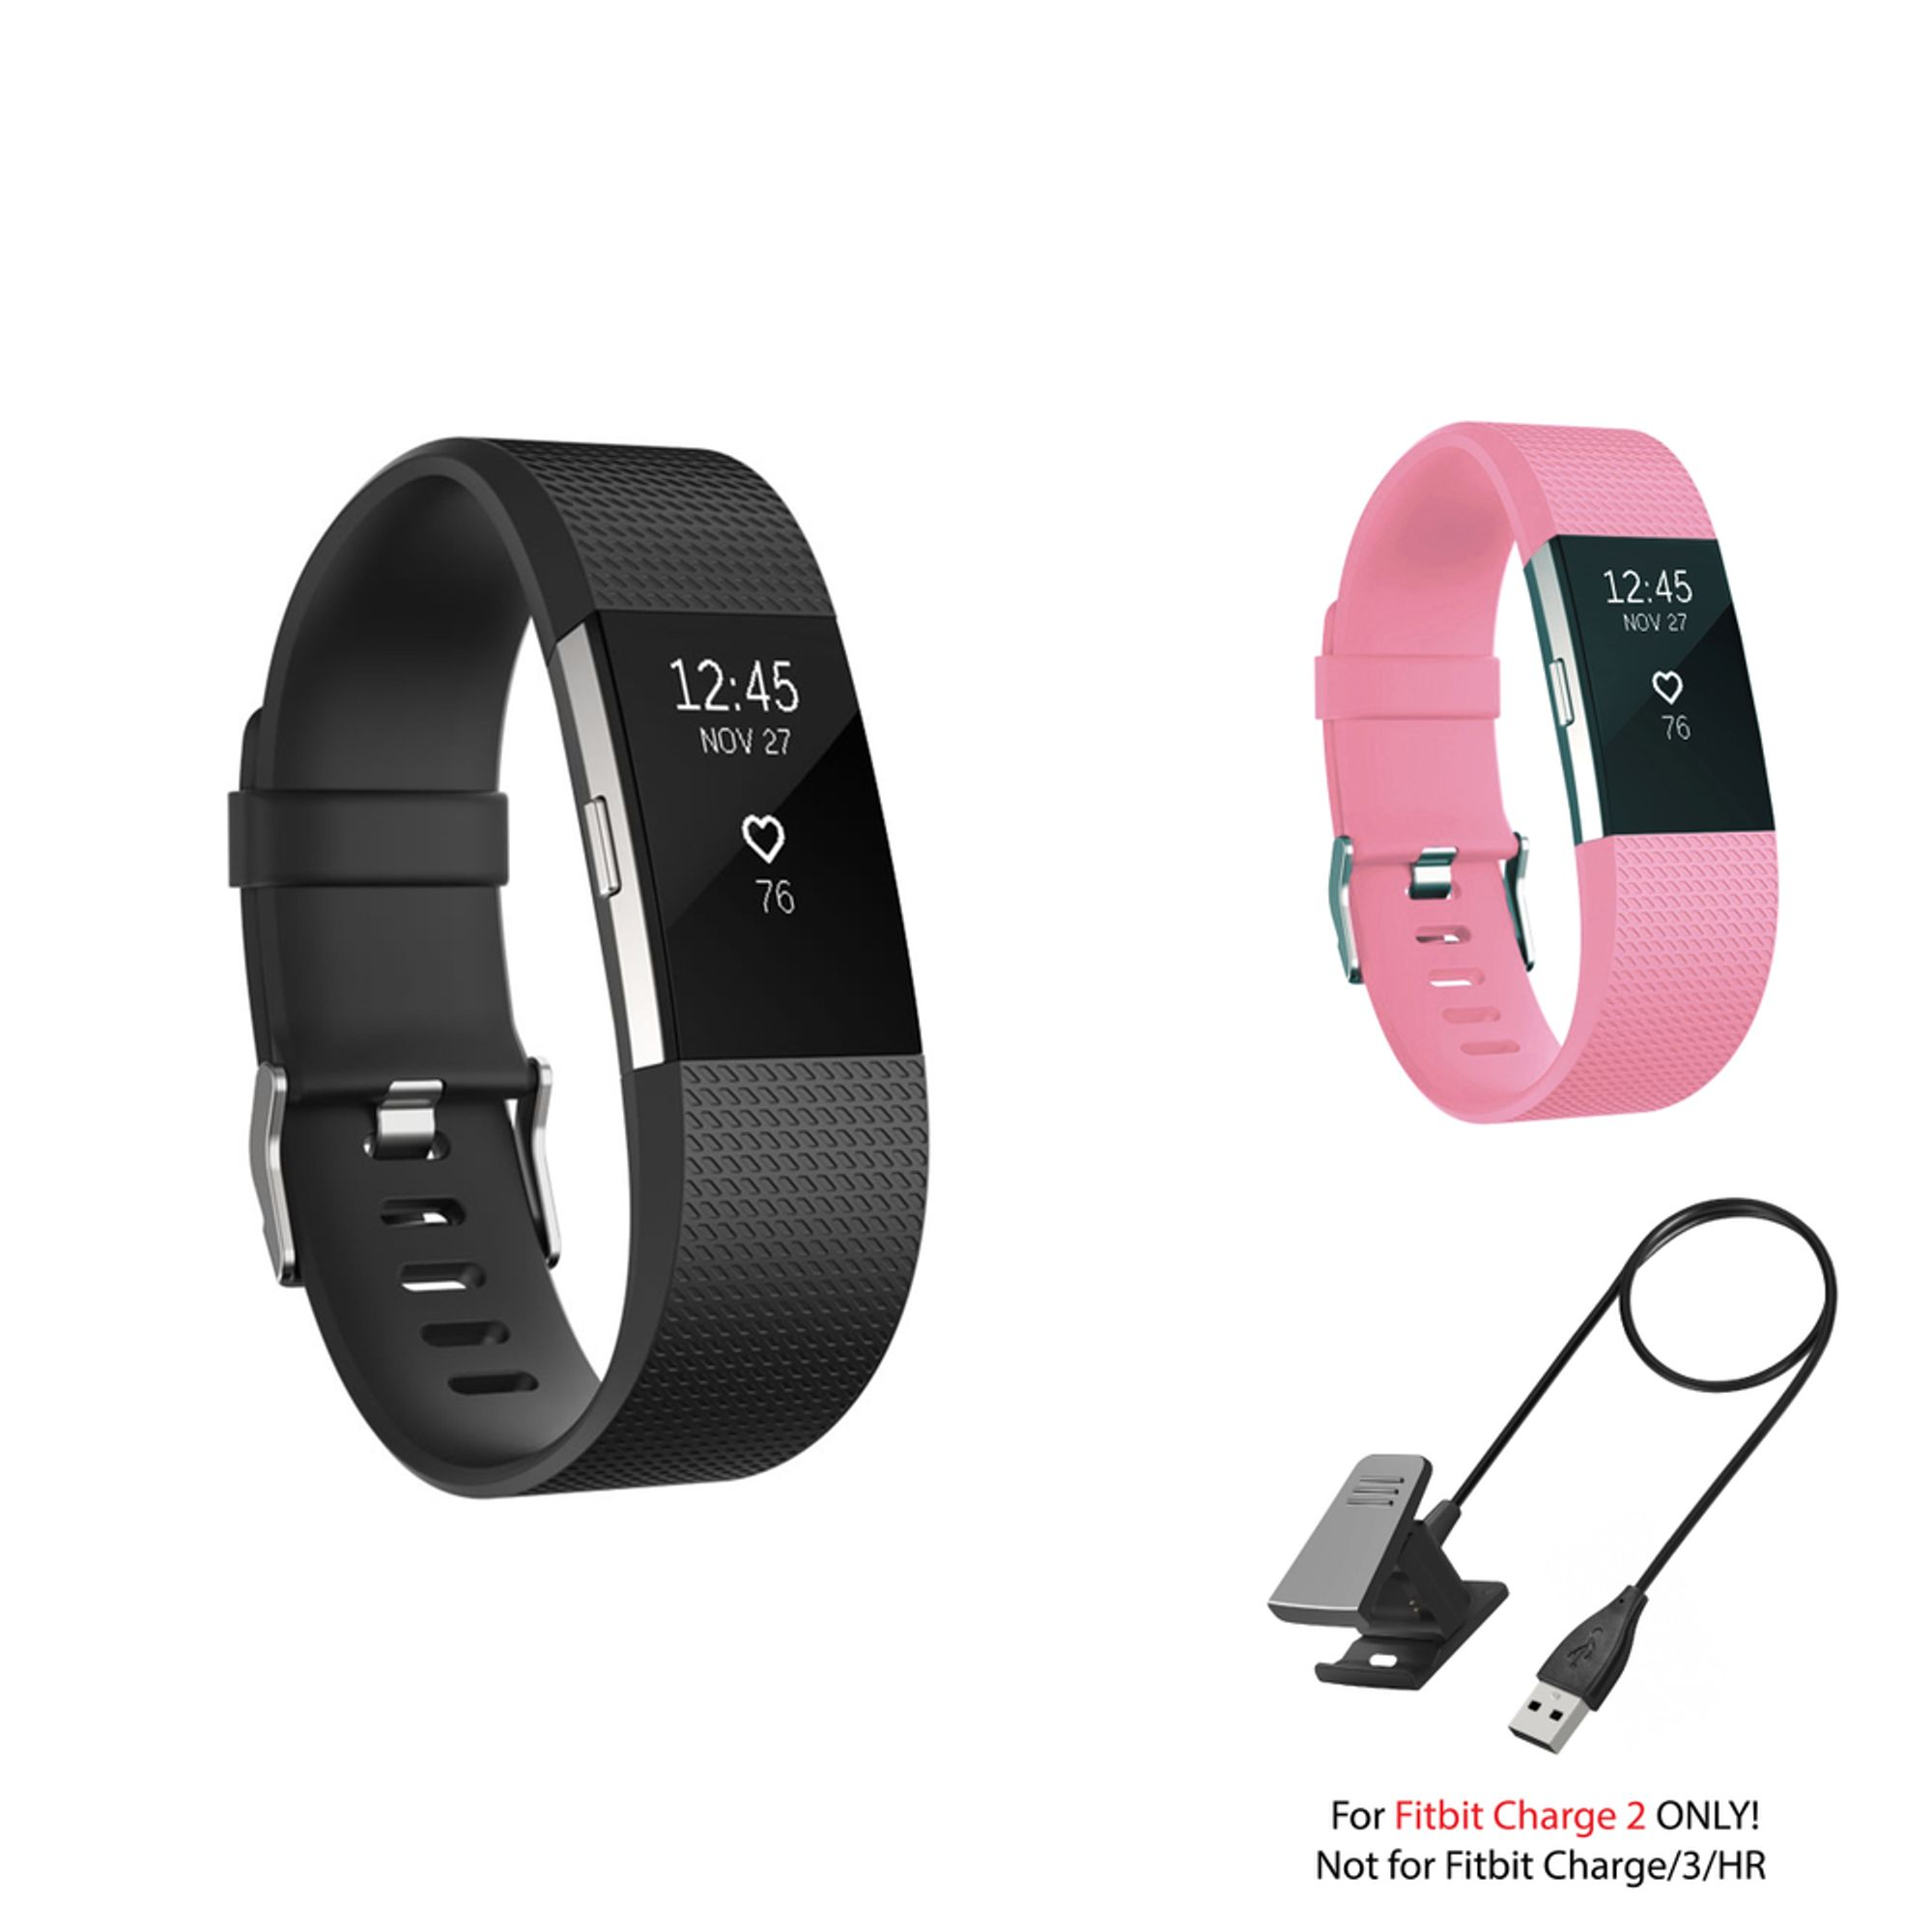 Fitbit Charge 2 Bands and Fitbit Charge 2 Charger by Zodaca 2 pack (Black & Light Pink) Replacement Bands Rubber Wristband Fashion Sport Strap with Buckle and USB Charging Cable for Fitbit Charge 2